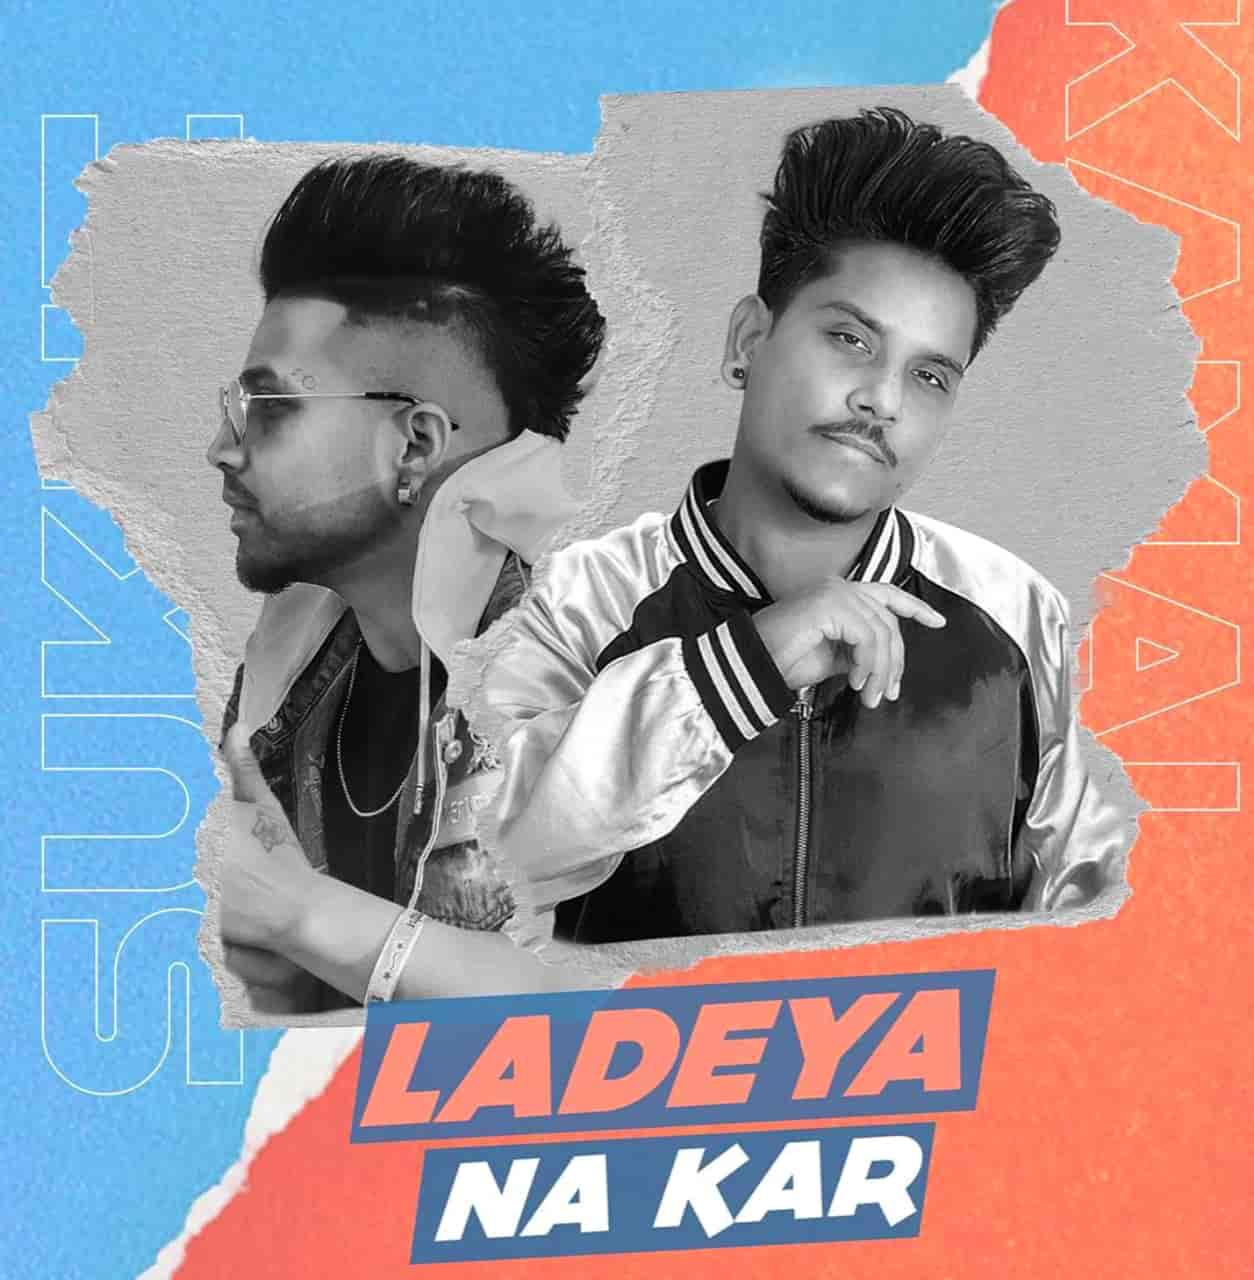 Ladeya Na Kar Punjabi Song Image By Kamal Khan and Sukhe